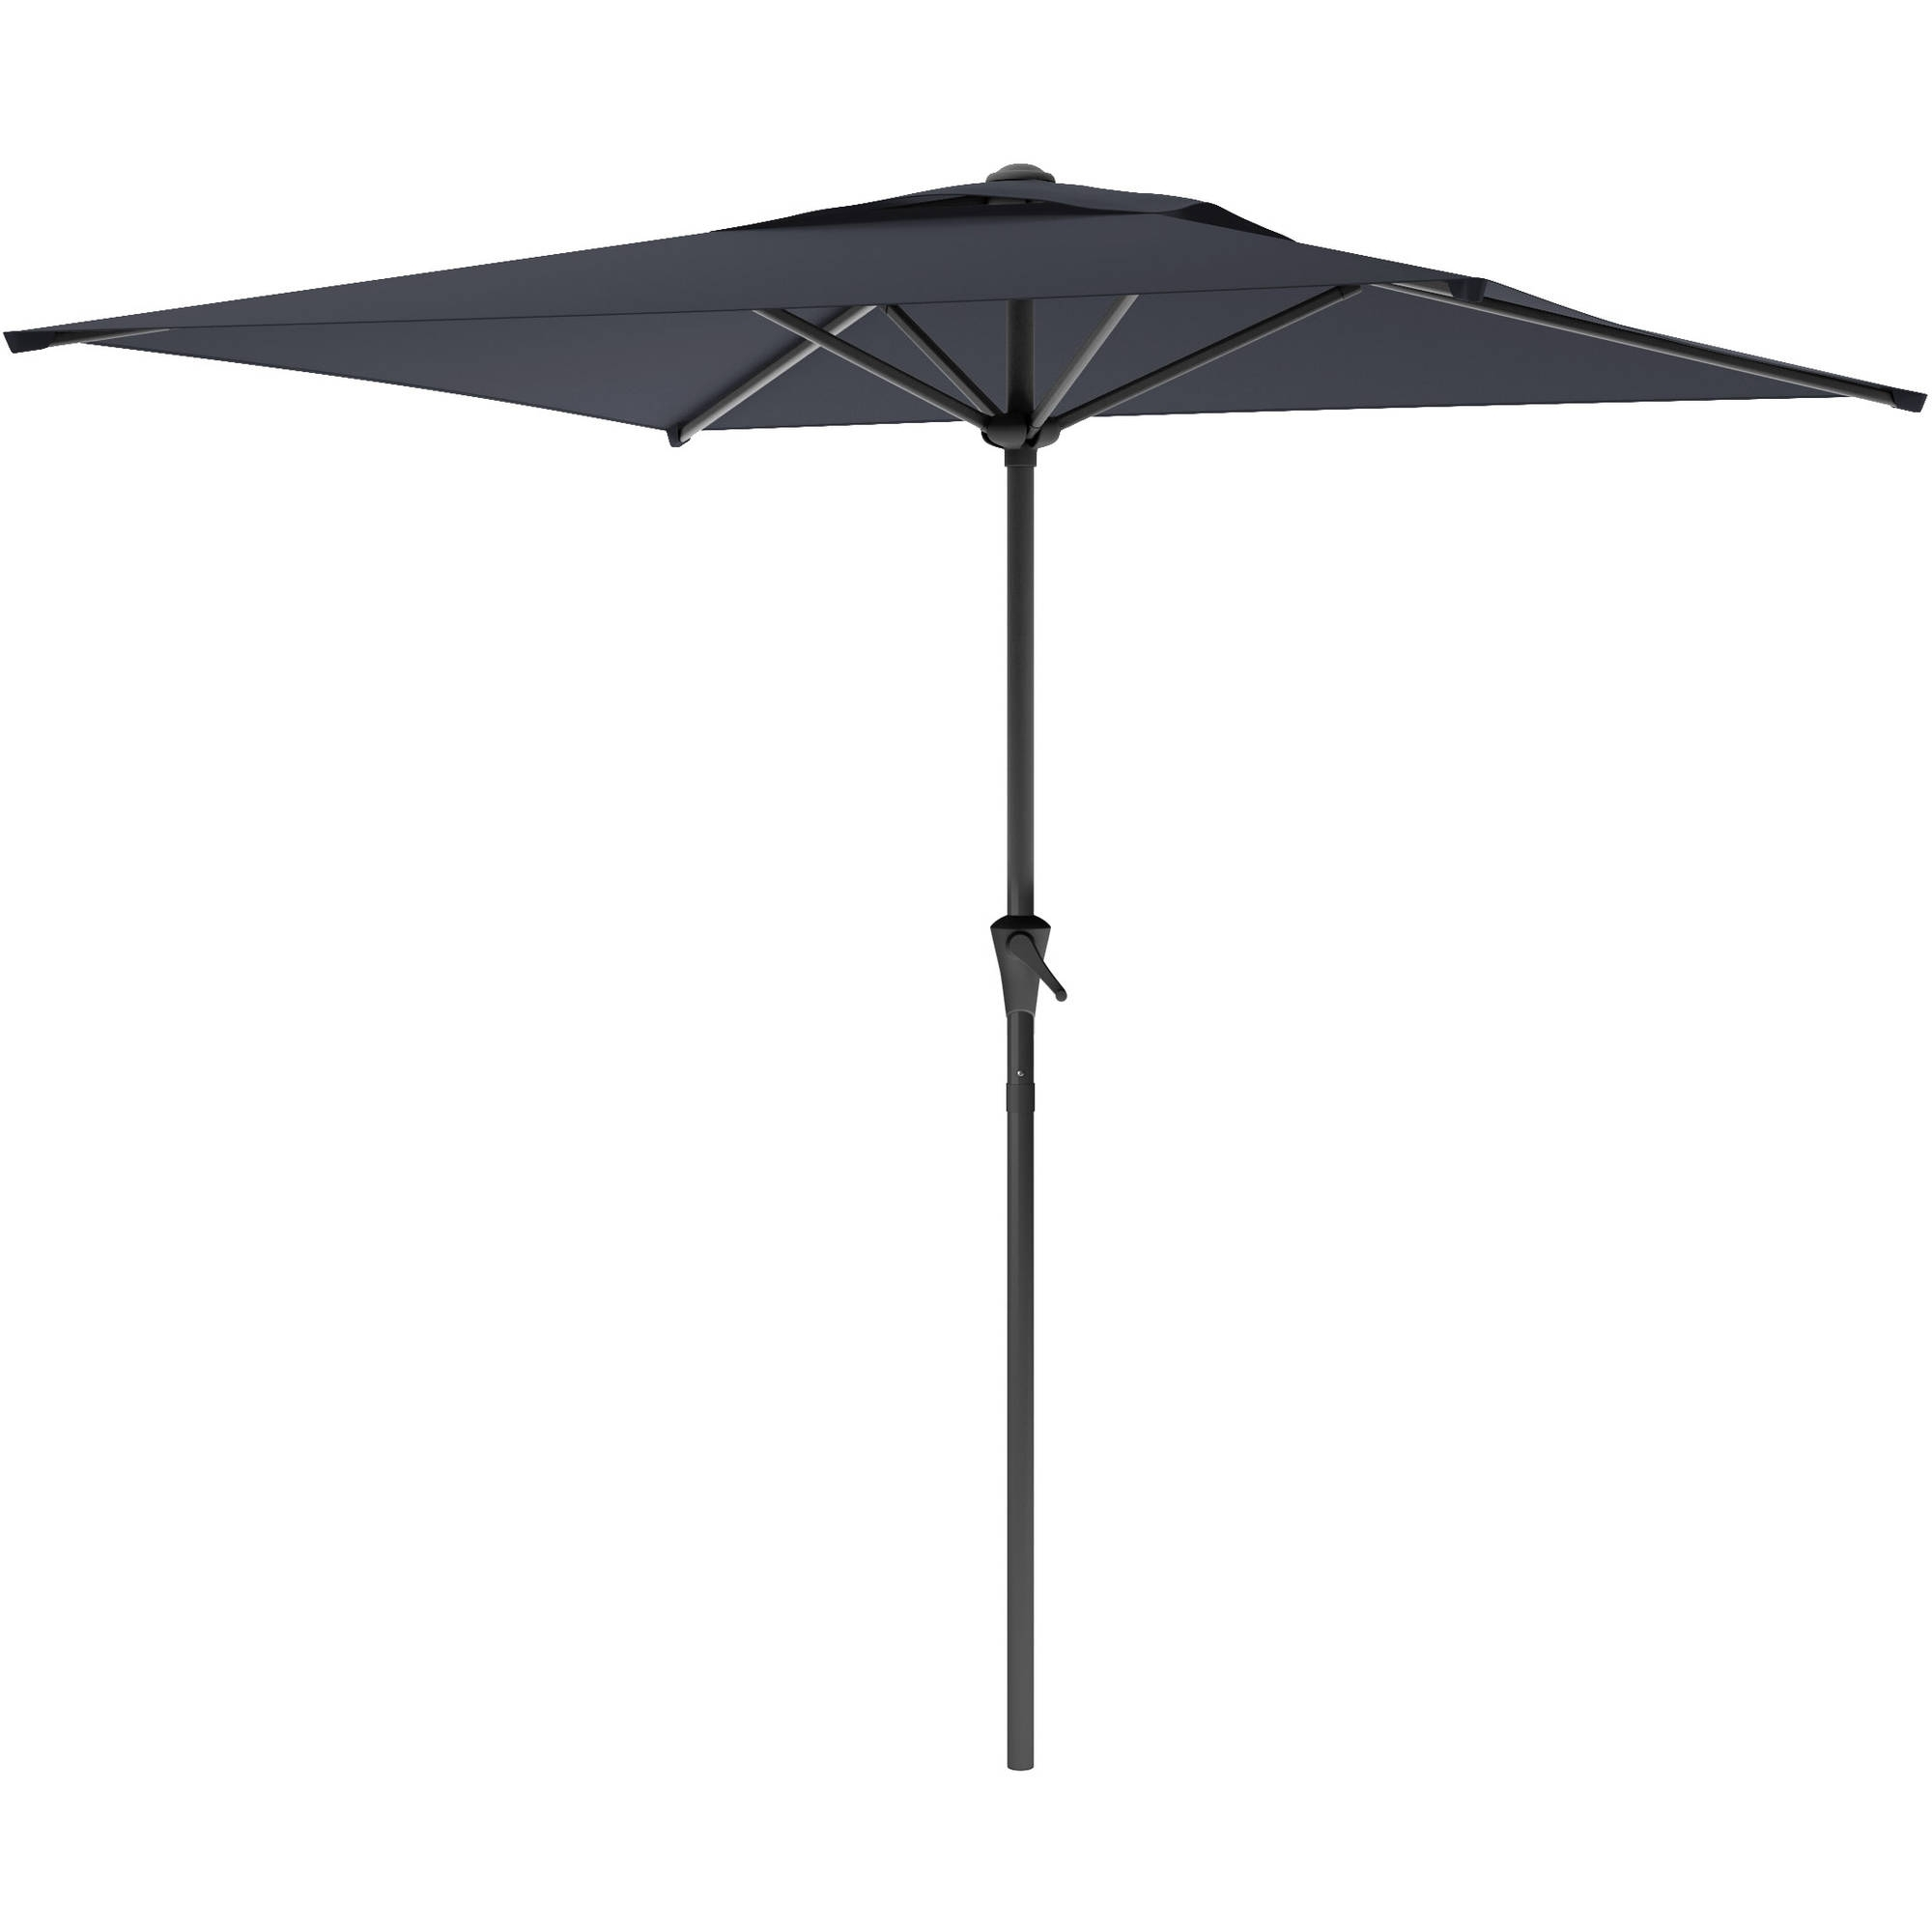 Black Patio Umbrellas Intended For Most Popular Sonax Corliving Square Patio Umbrella Metal Umbrellas In Black (Gallery 20 of 20)